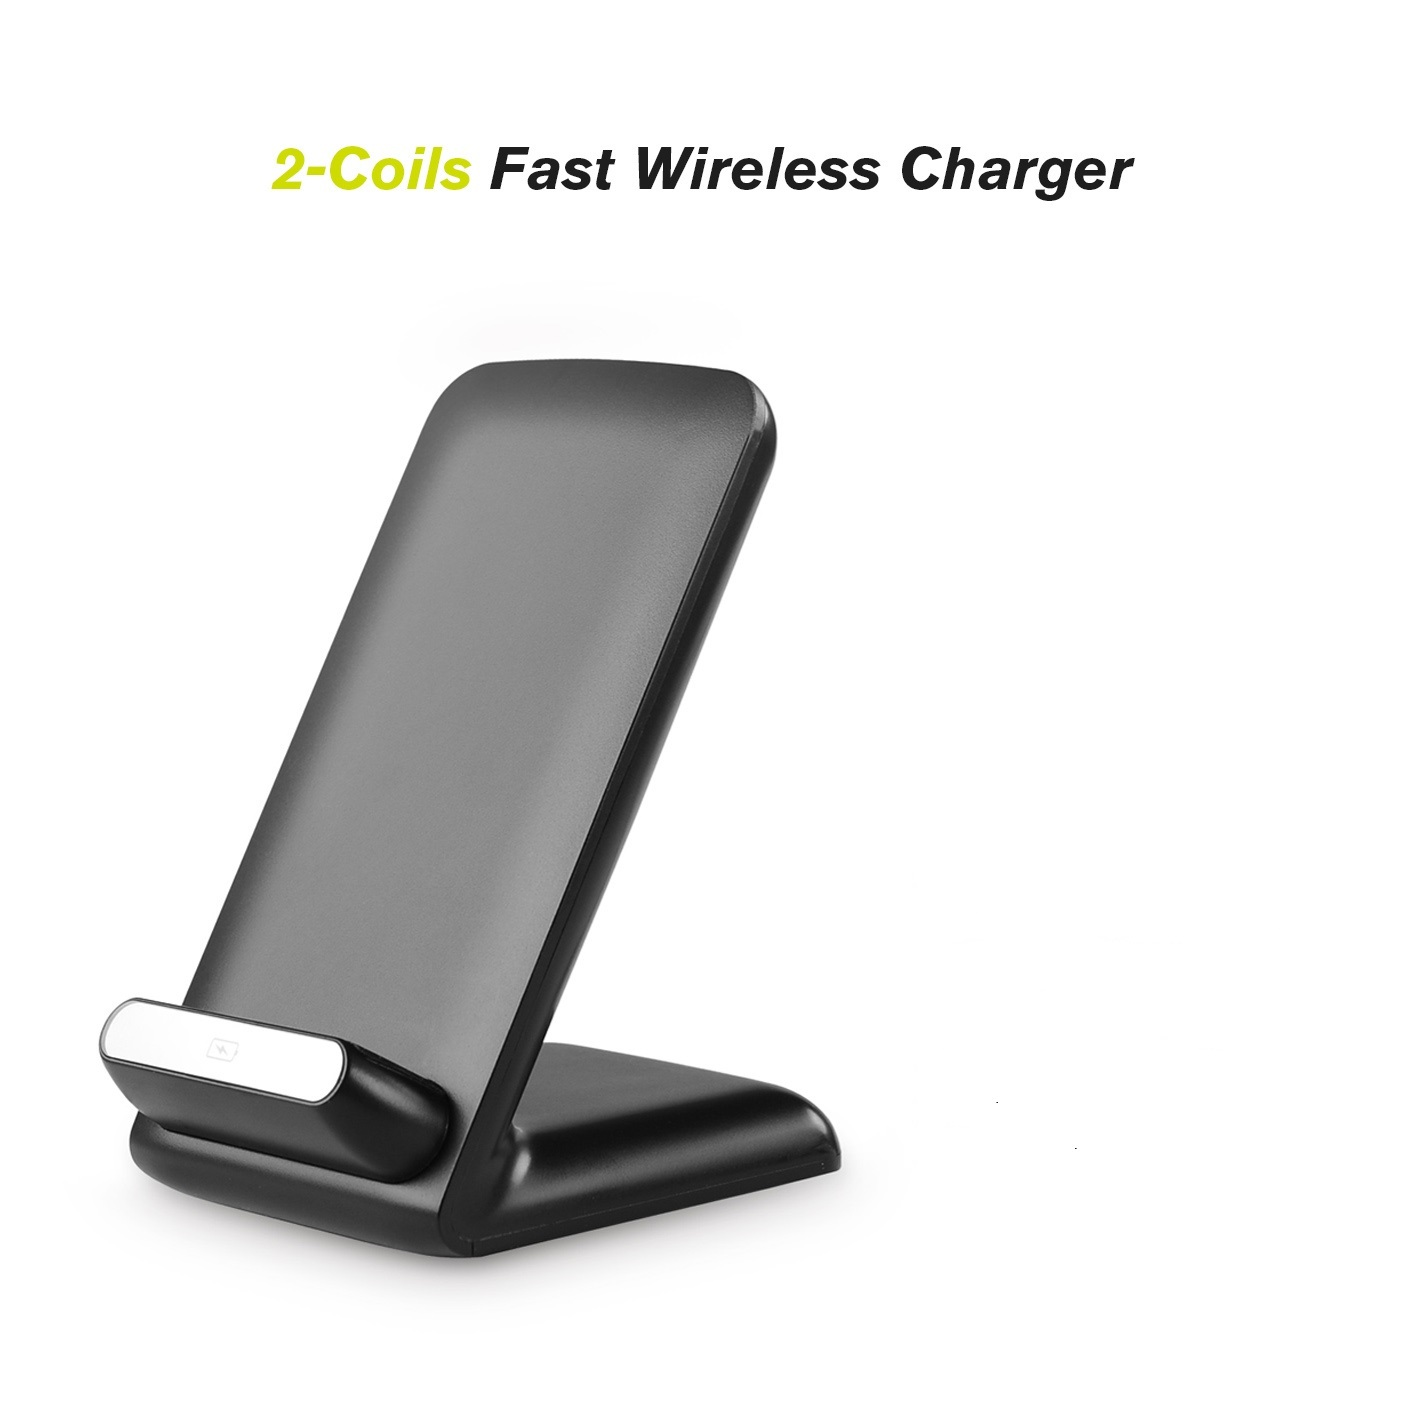 2 coils fast wireless charger. Black Bedroom Furniture Sets. Home Design Ideas